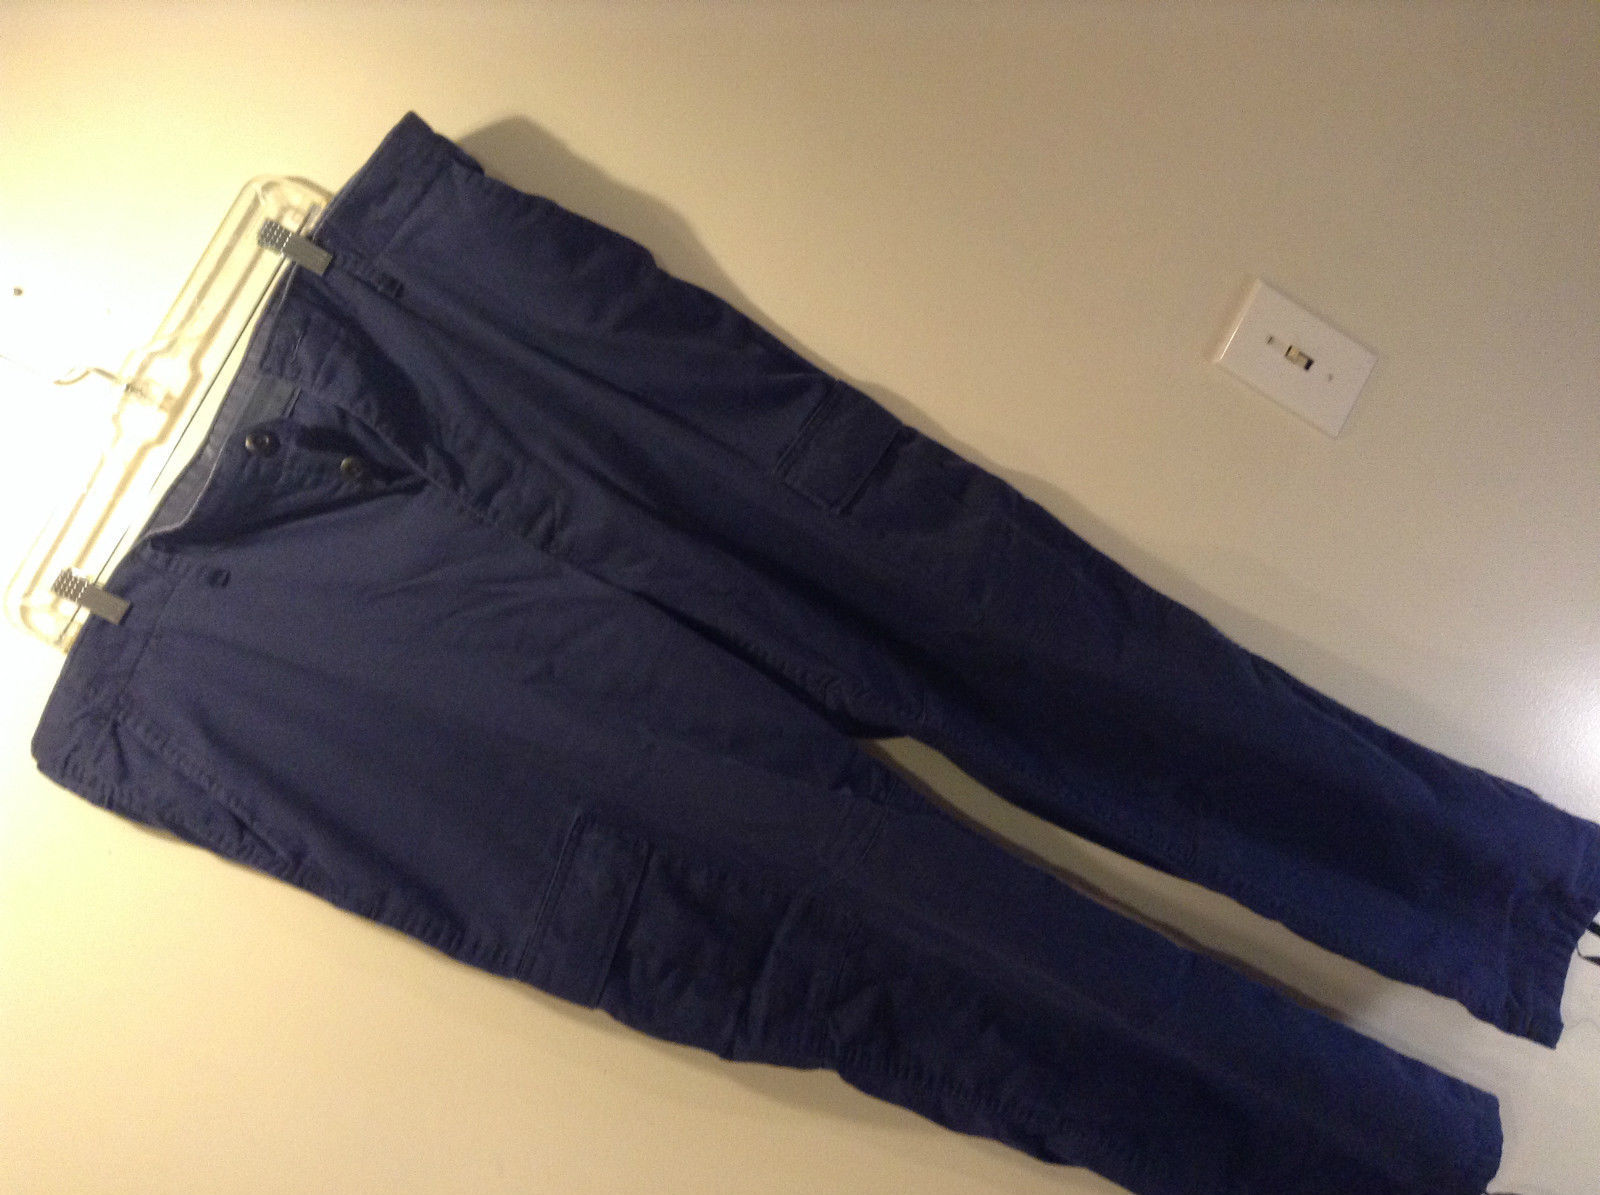 Trousers Combat Size XL Long Navy Blue Cargo Pants Tie at Legs Back Pocket